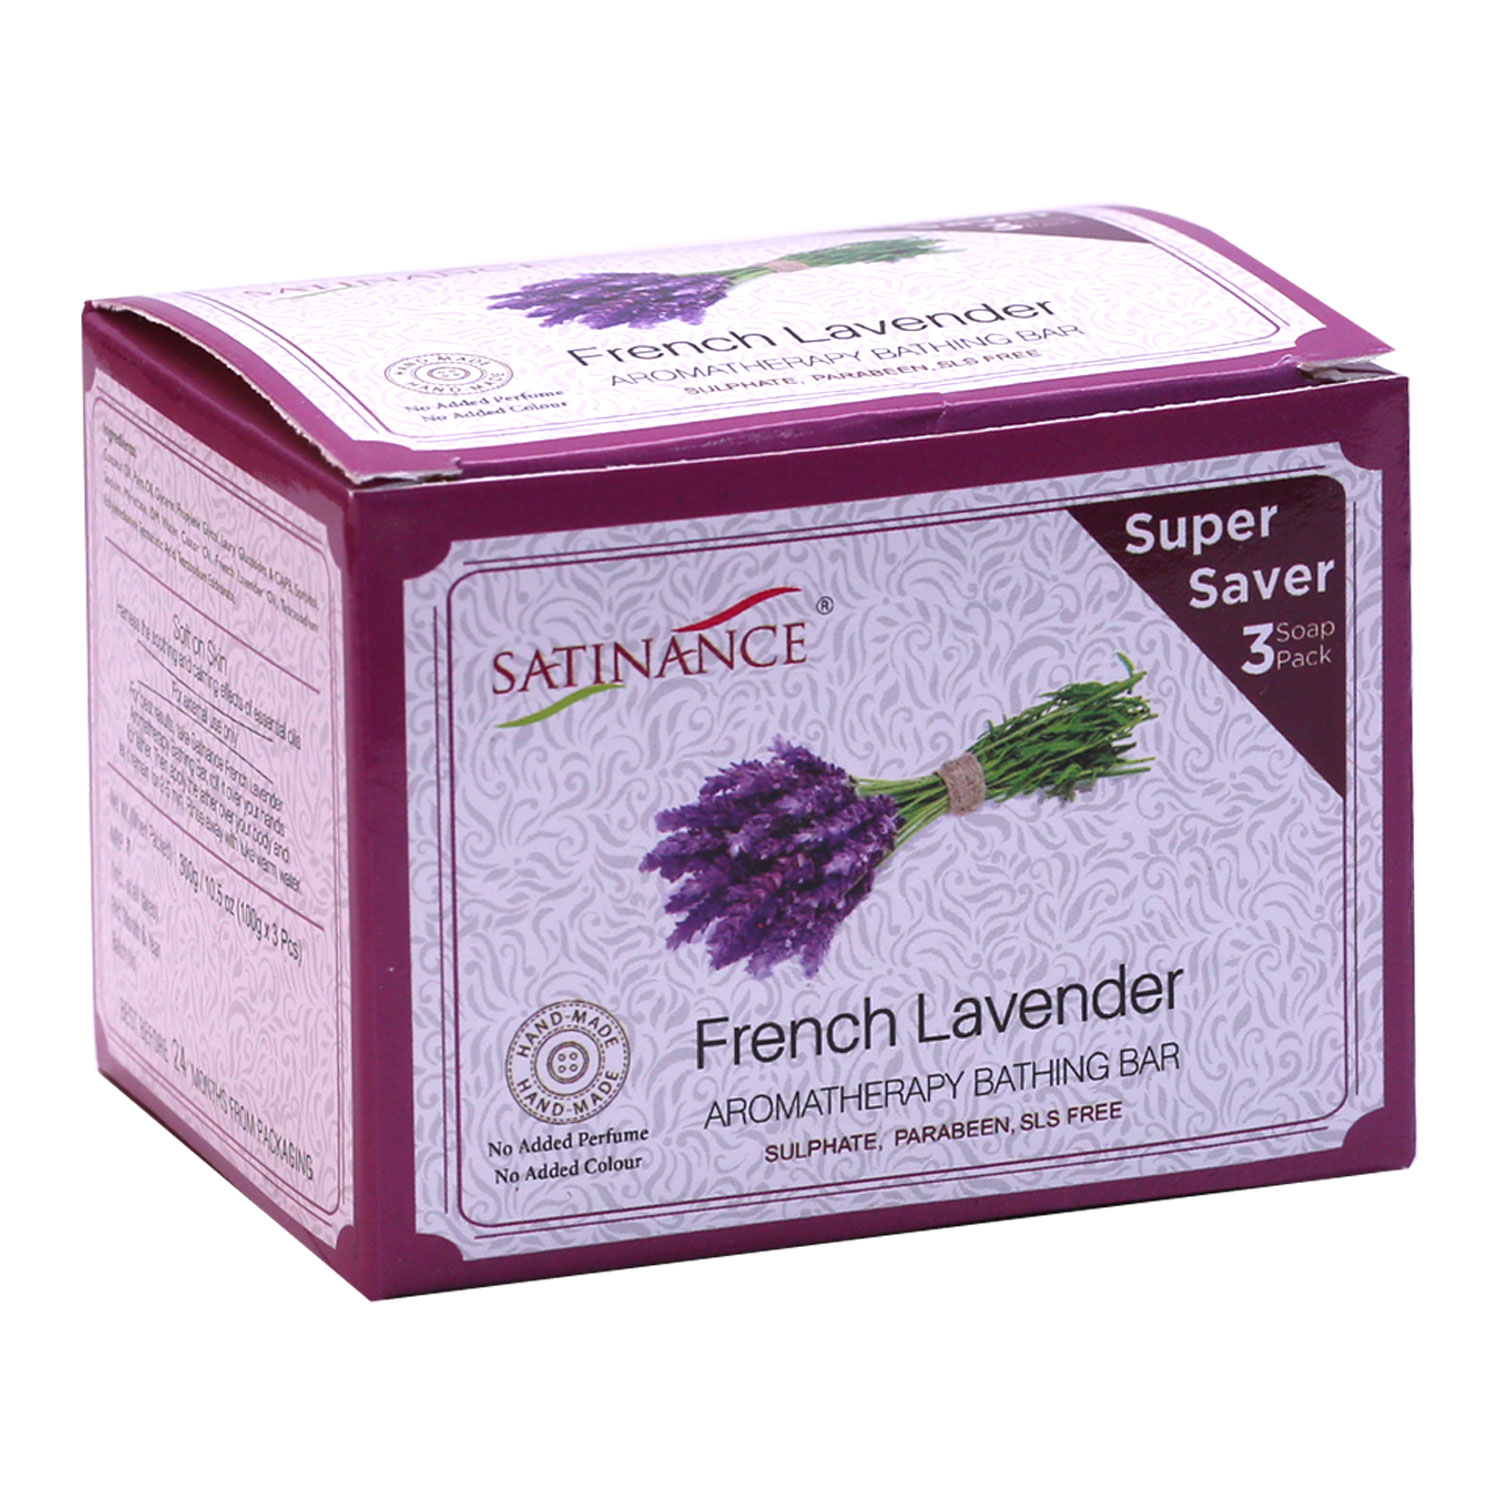 French Lavender Aromatherapy Bathing Bar 300g (100g*3) Super Saver Pack